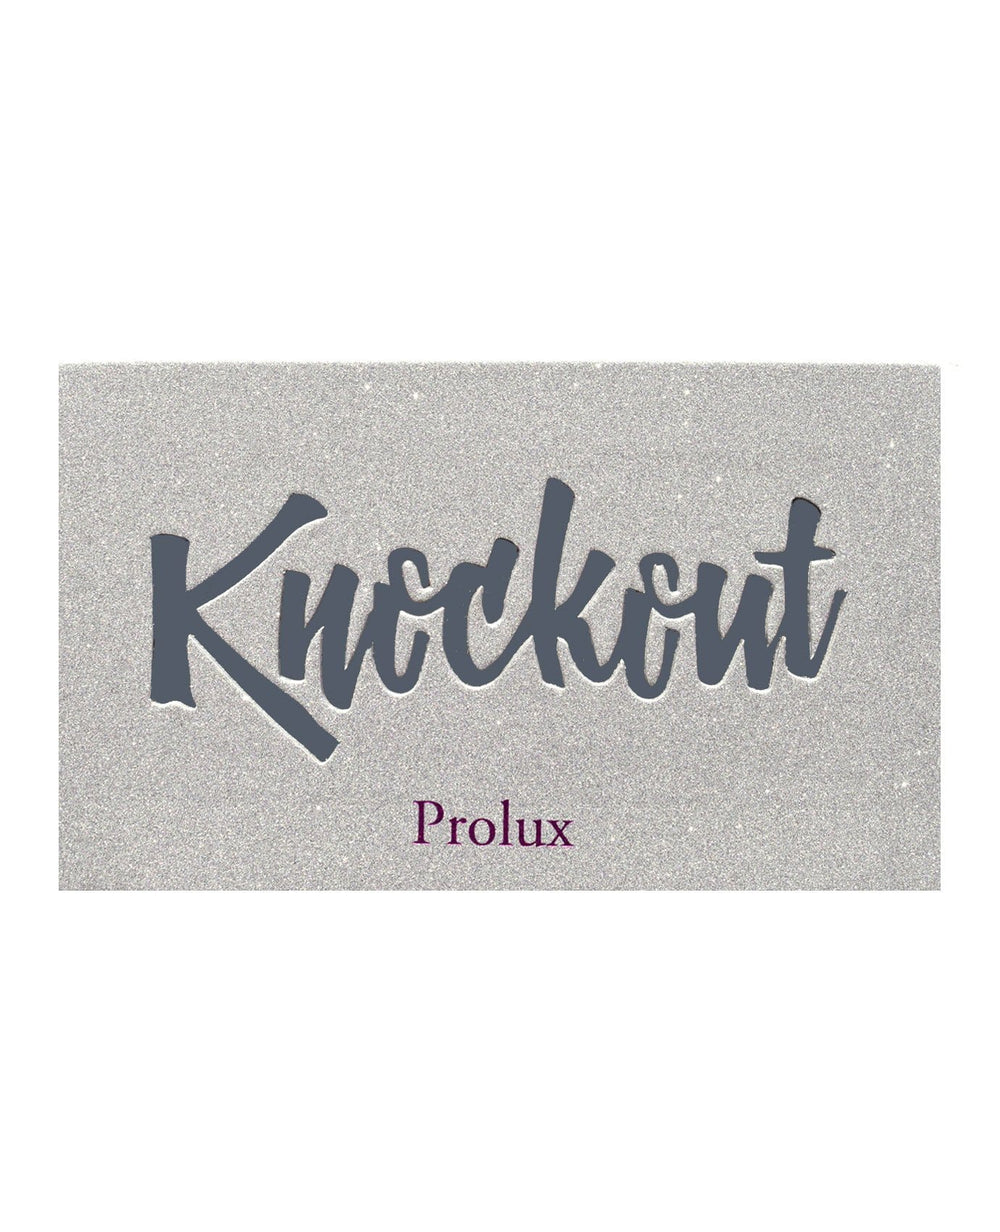 Prolux Knockout Eyeshadow Palette